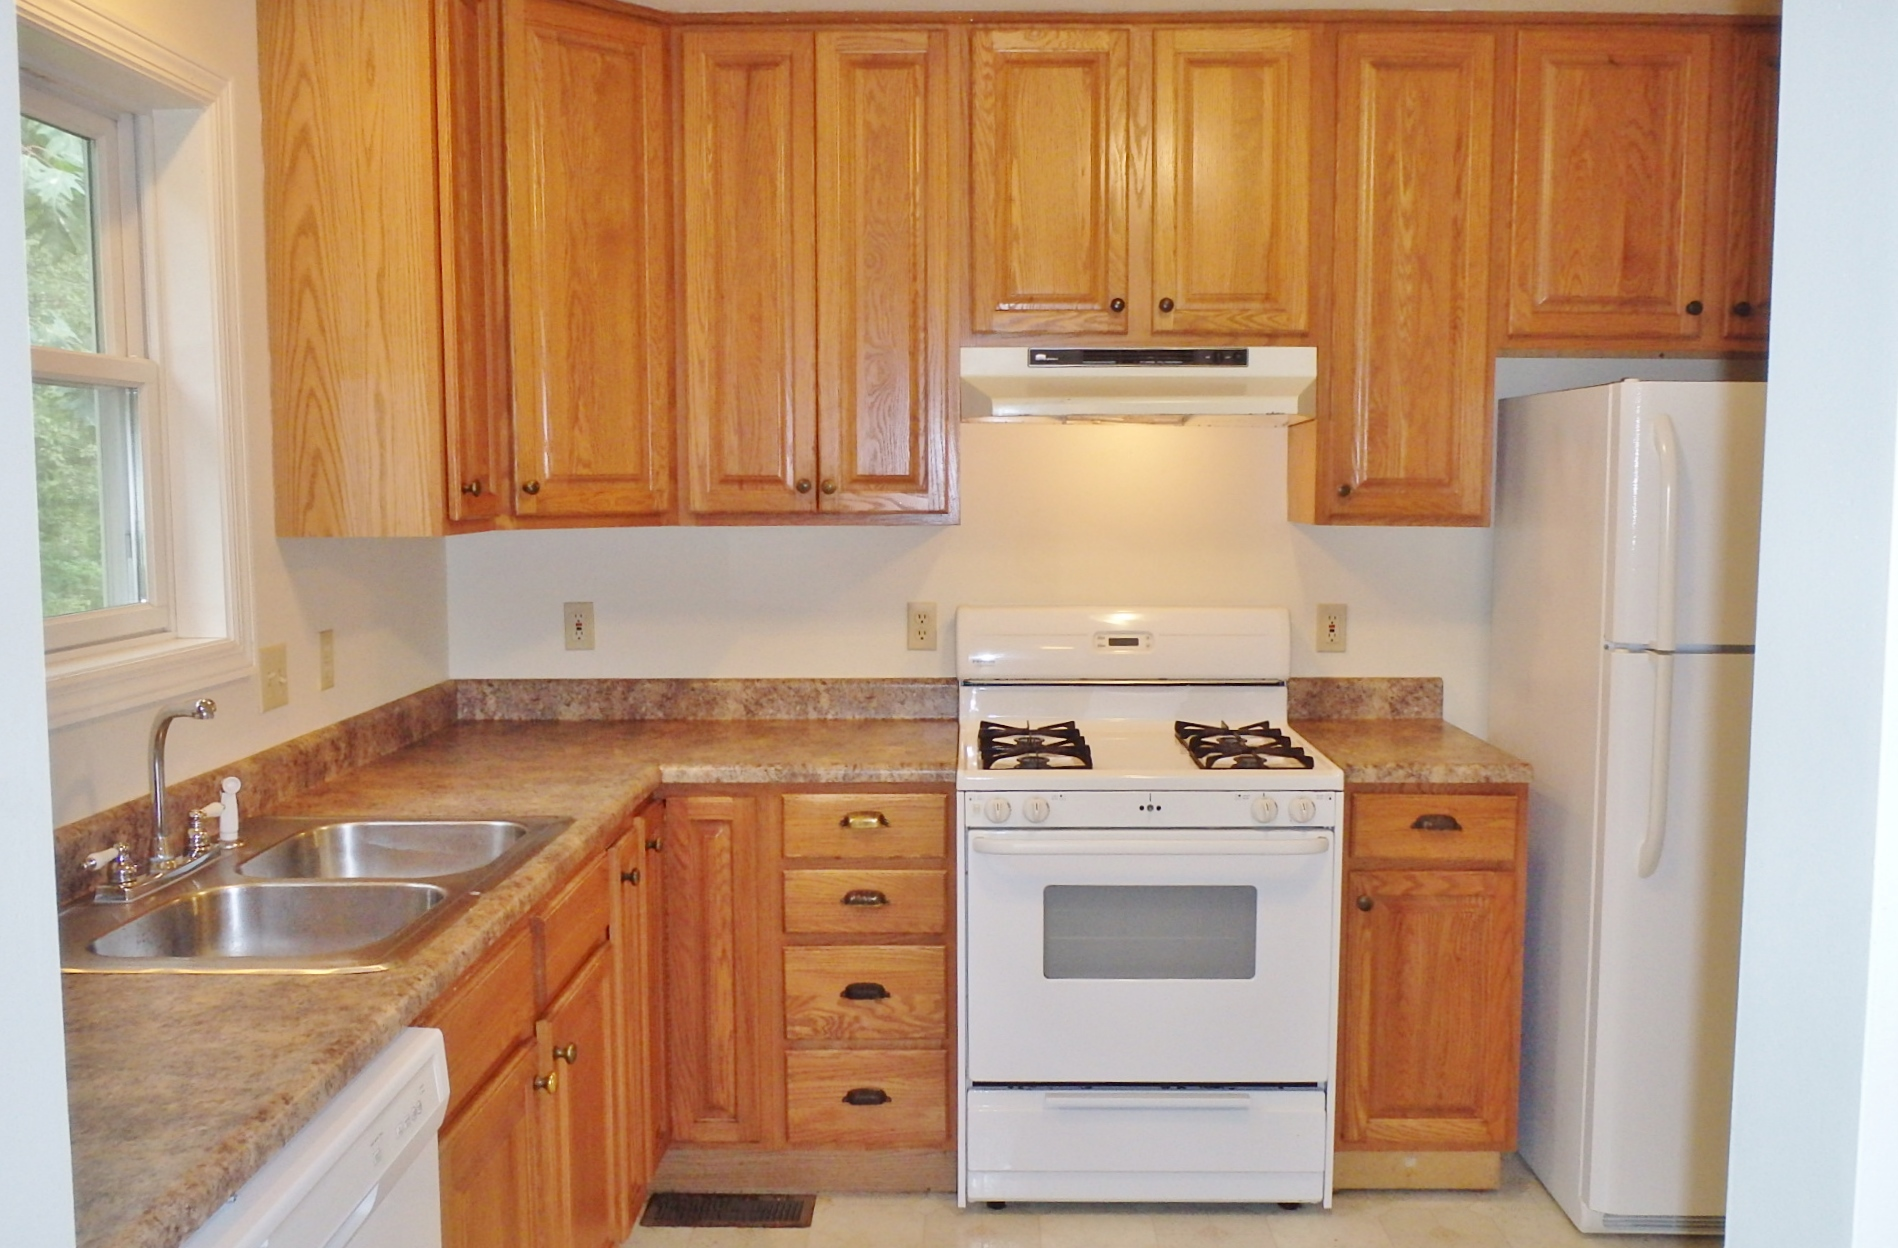 161 Ghaner Drive Kitchen